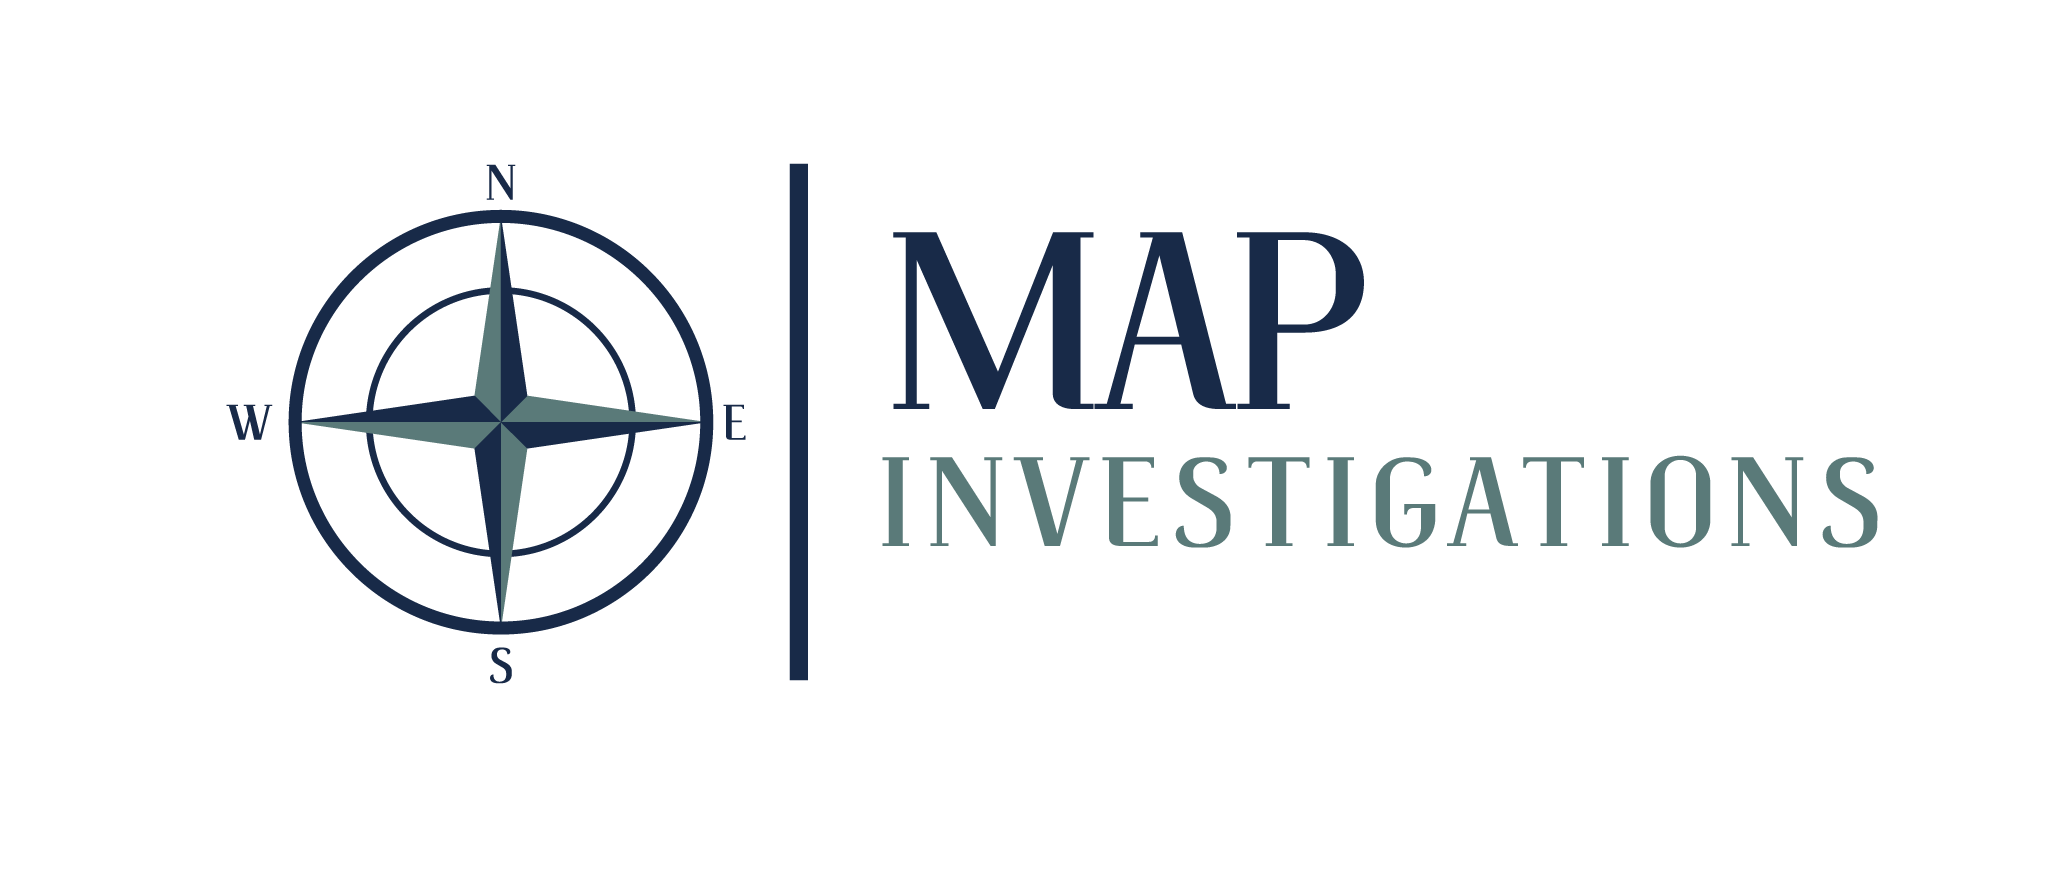 Service Of Process Map Investigations